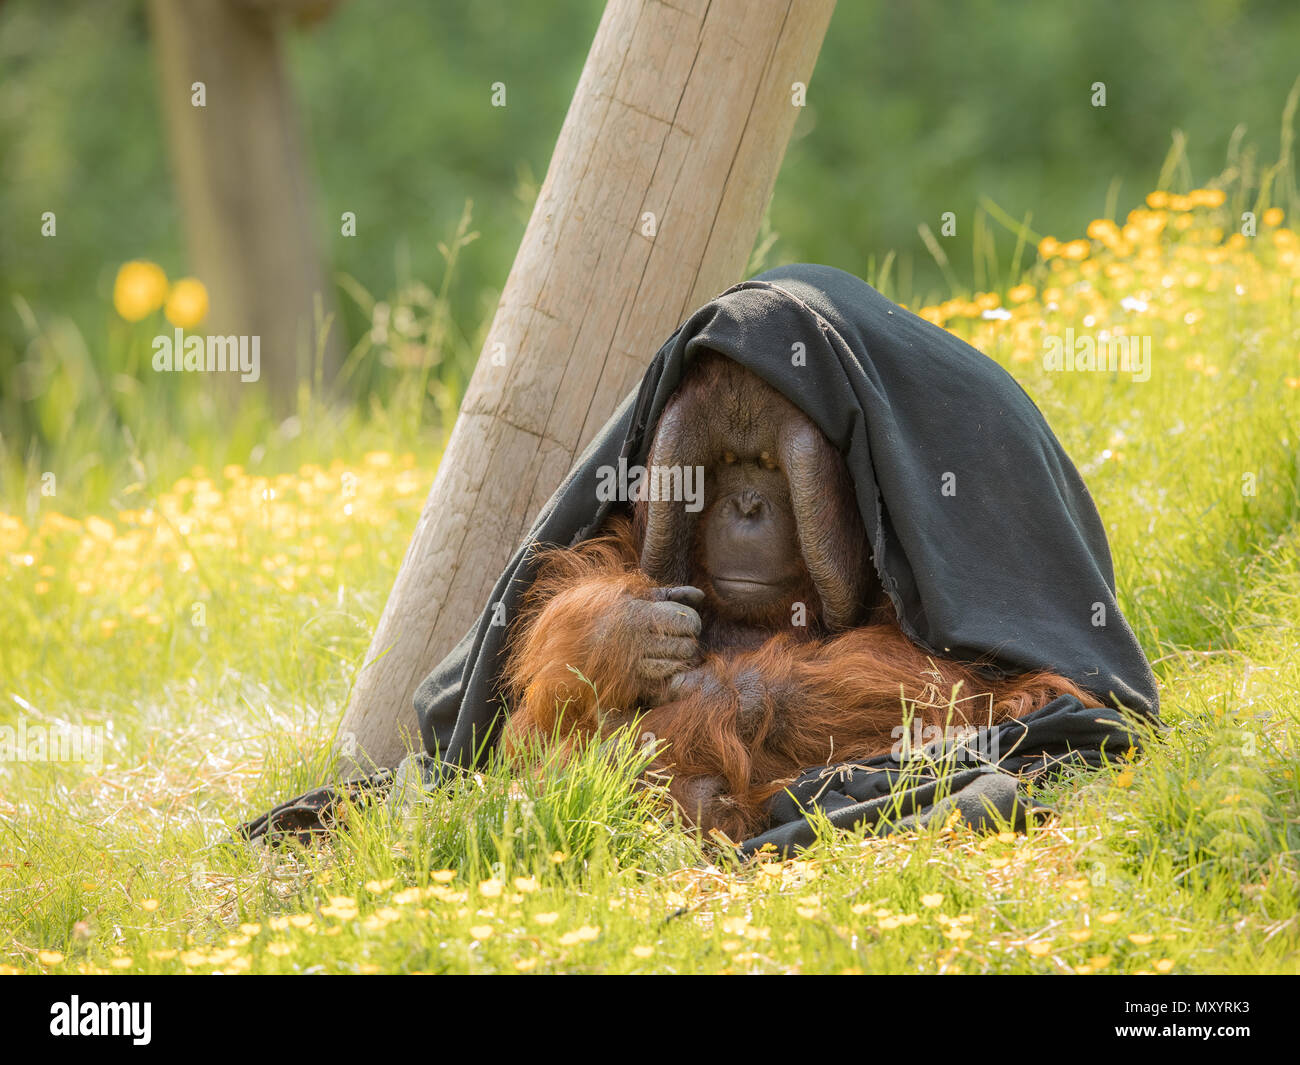 Adult male Bornean Orangutan - Pongo pygmaeus - sitting outdoors in green grass, partly hiding under a black blanket. Looking shy, thoughtful and introvert. - Stock Image